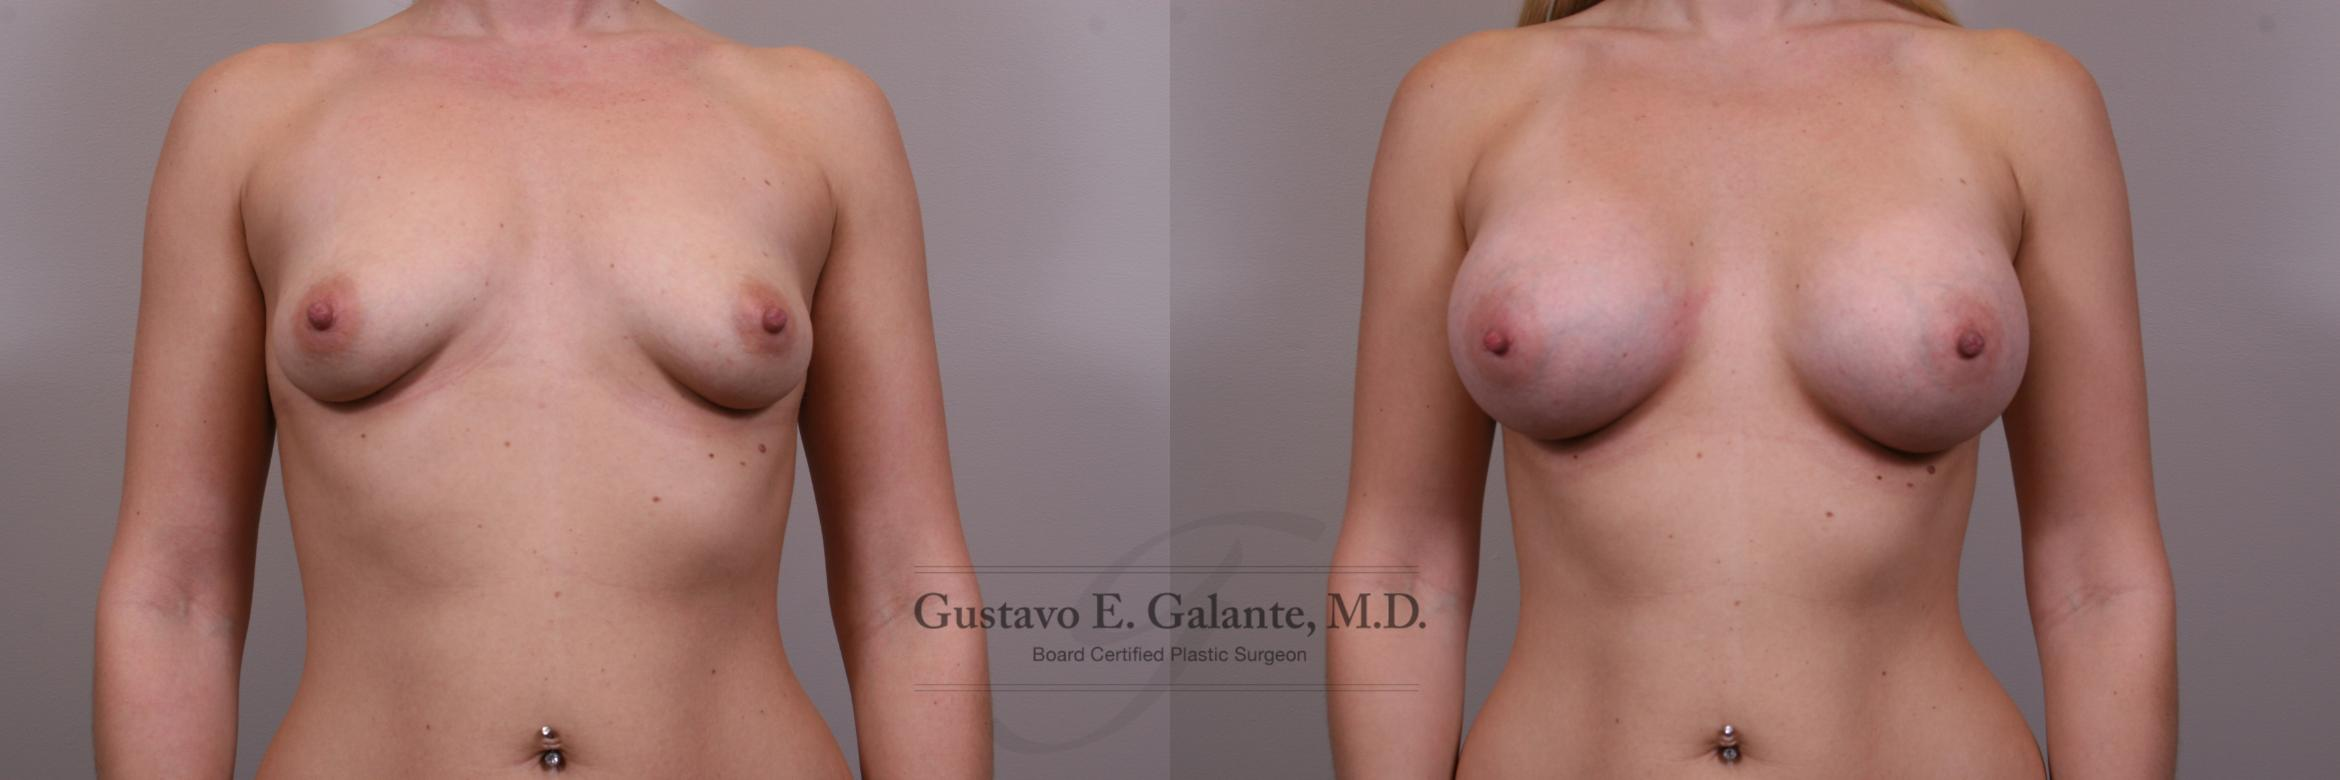 Breast Augmentation Case 149 Before & After View #1 | Valparaiso & Schererville, IN | Gustavo E. Galante, MD